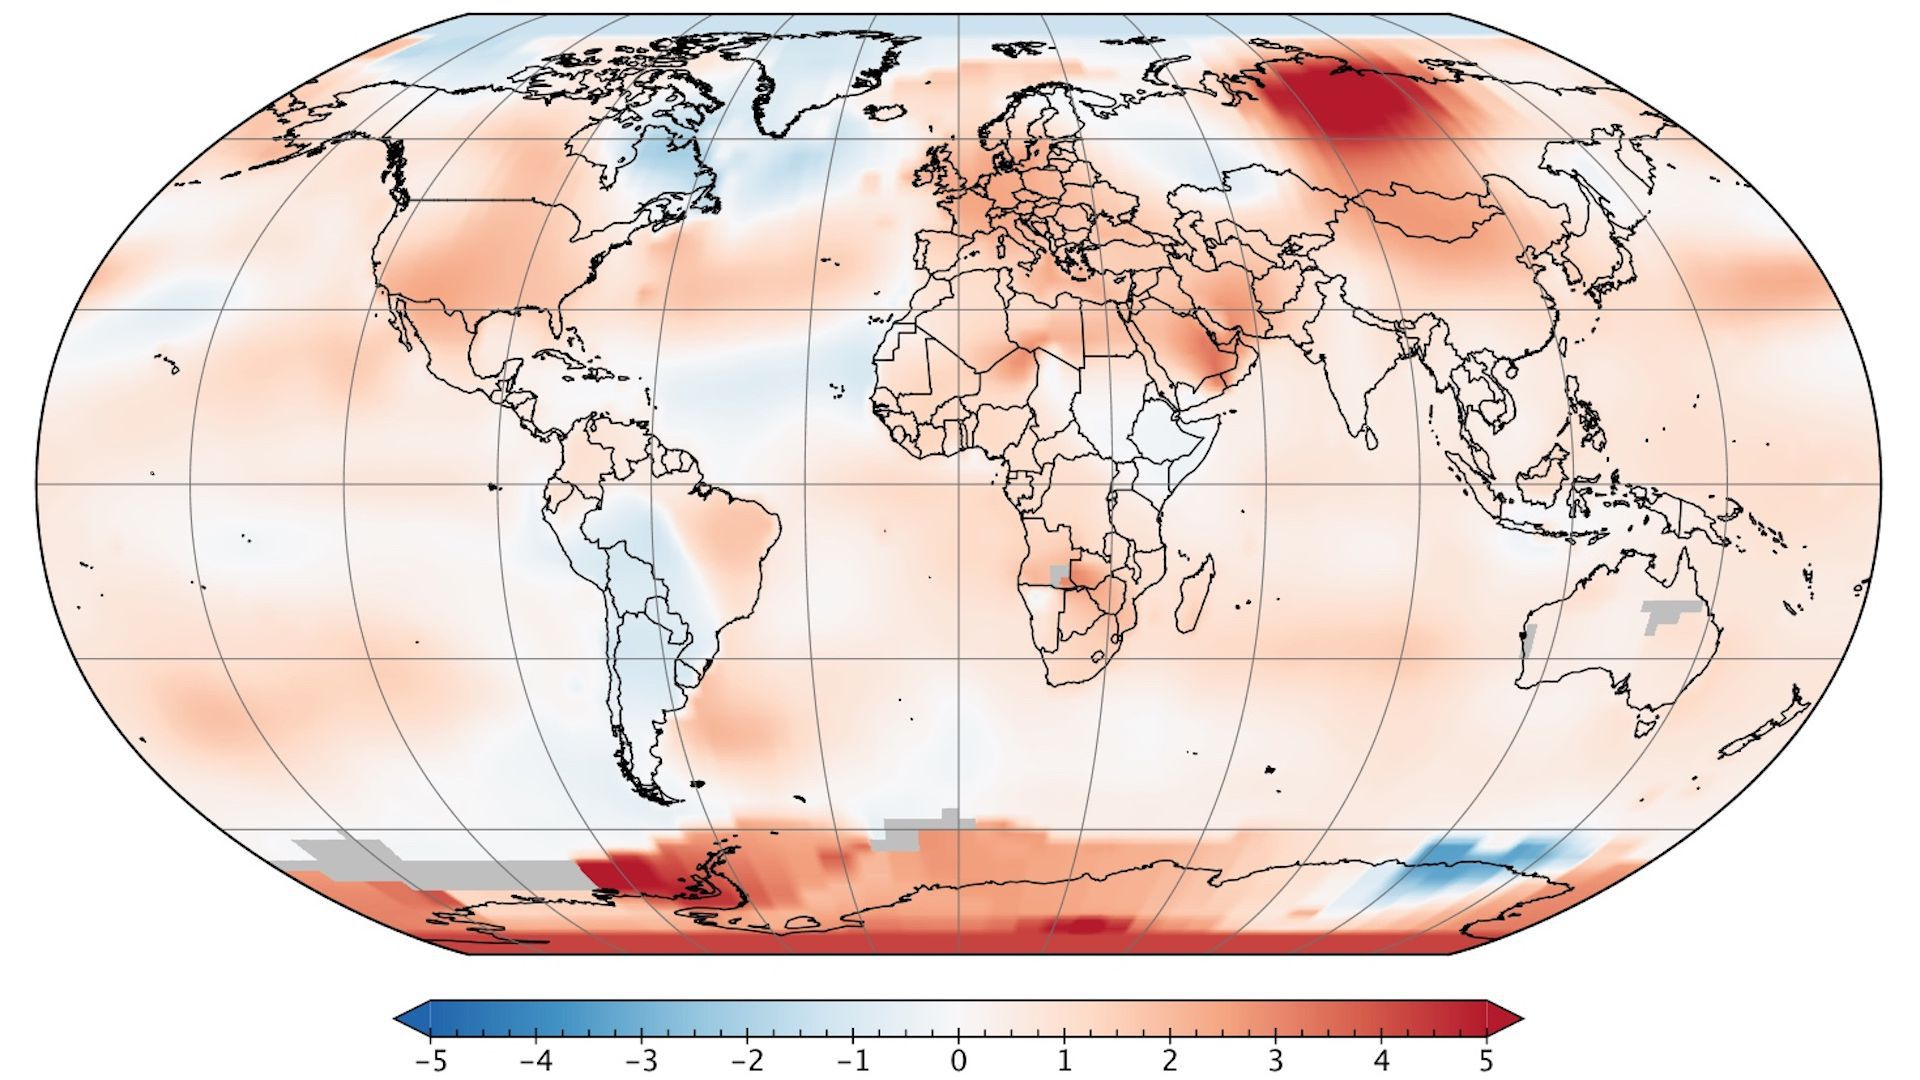 Image showing global temperature anomalies in June